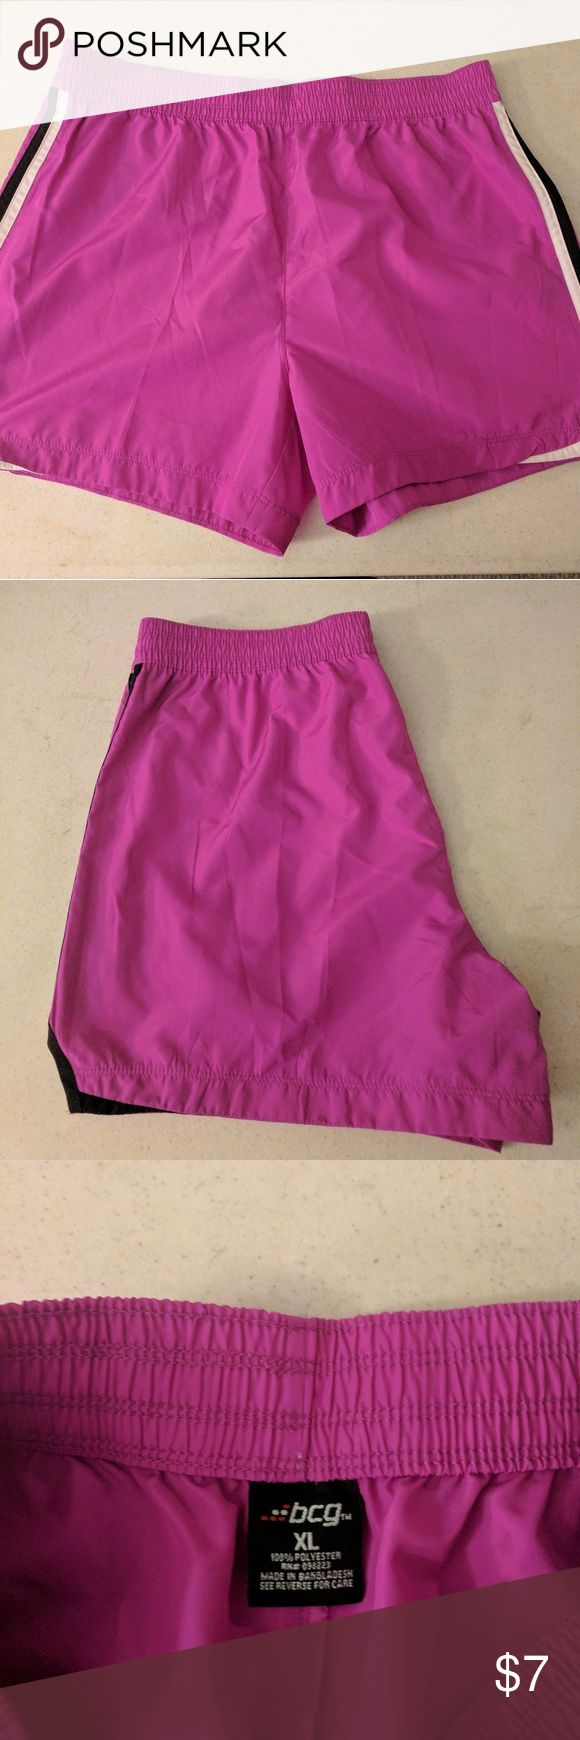 Hot Pink Workout Shorts BCG Workout shorts, size XL. Shorts are hot pink with a black and white stripe on sides. No lining inside shorts. 100% polyester. All items come from a smoke free home. BCG Shorts